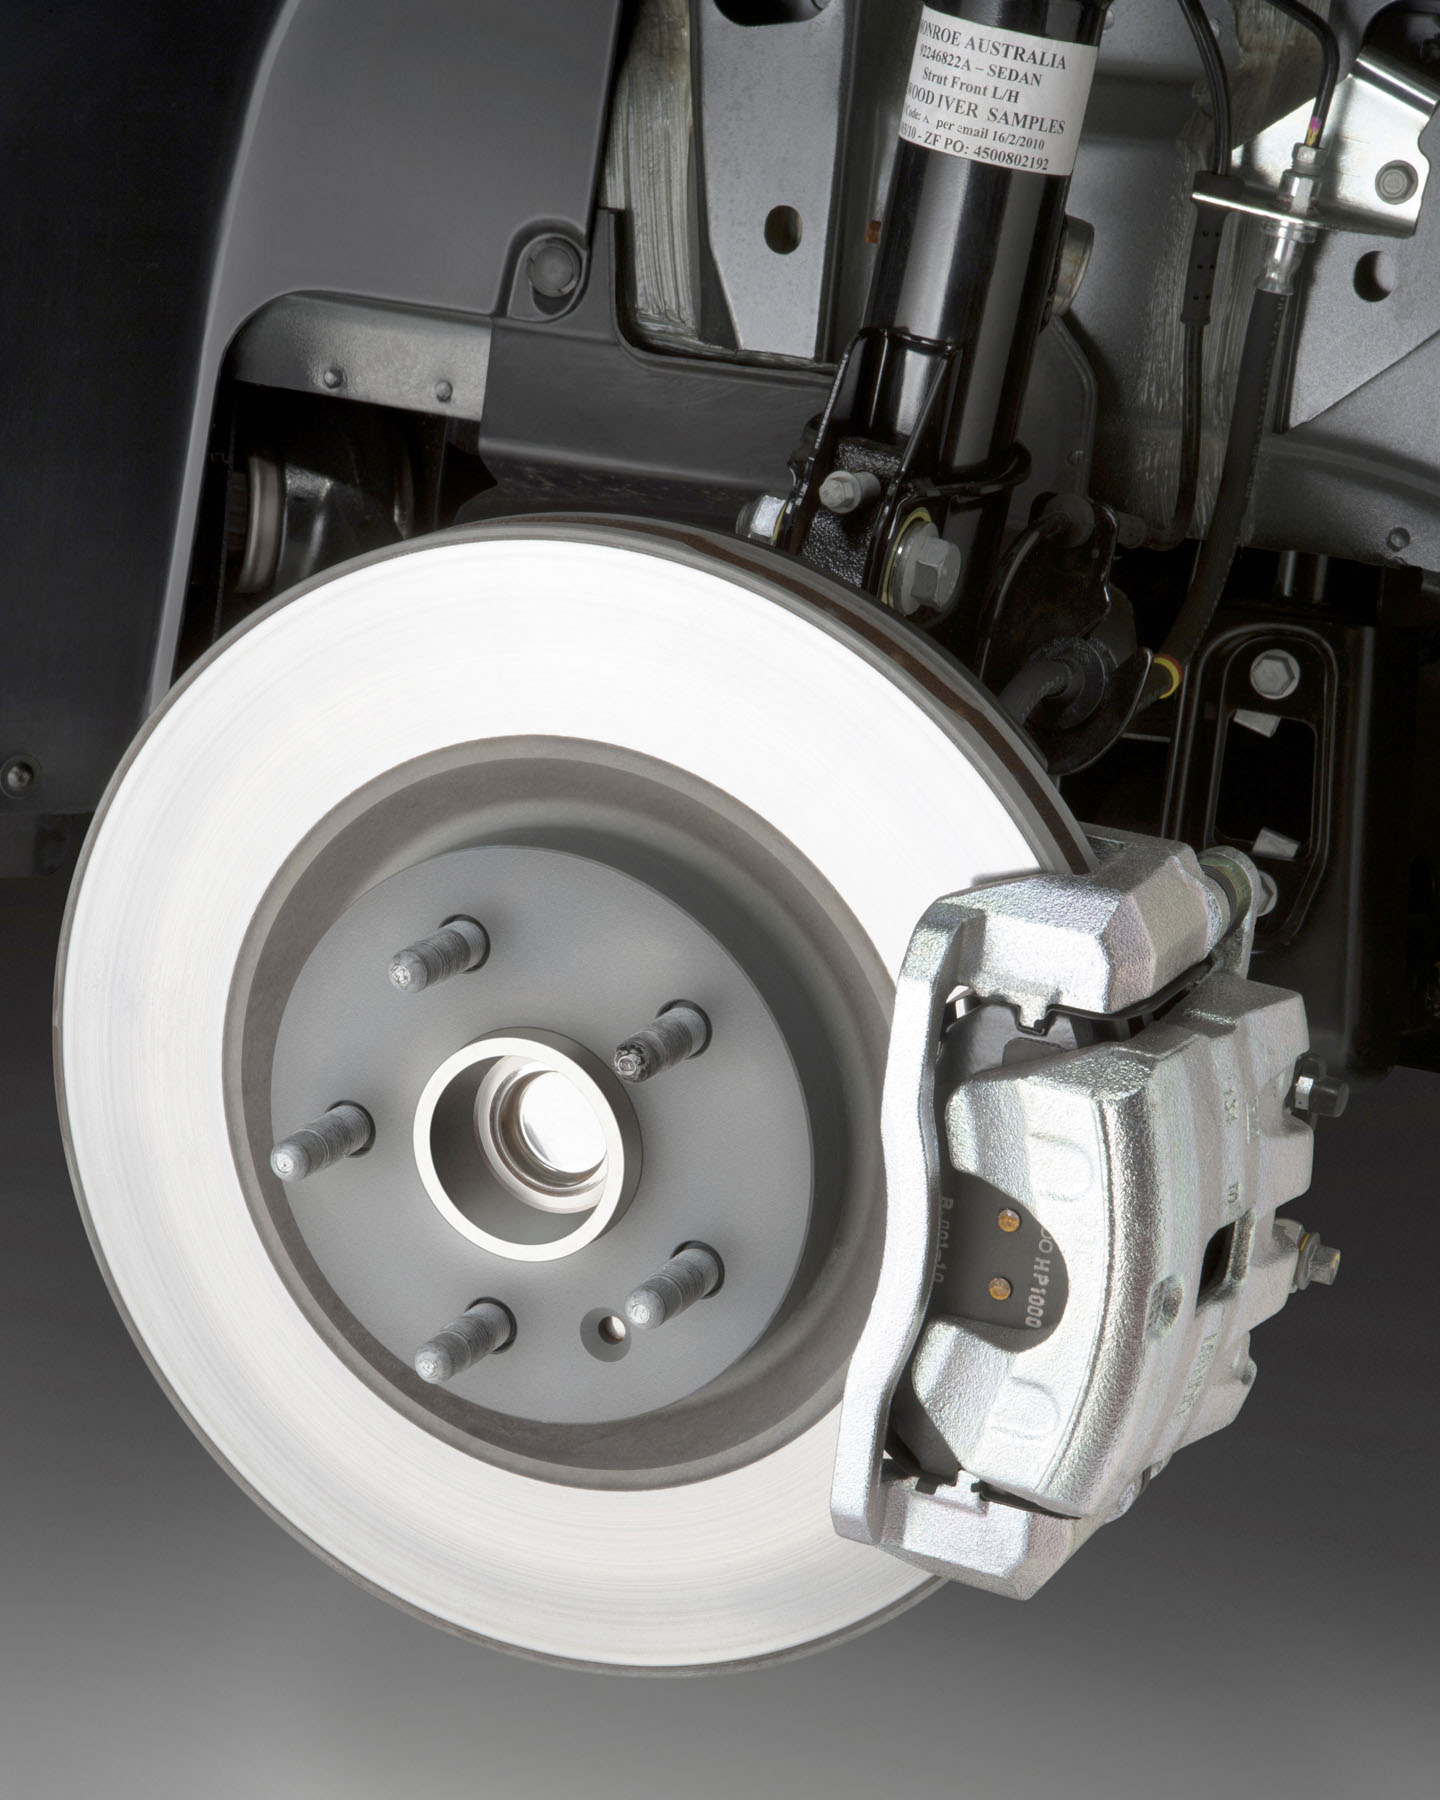 Here's a disc brake system, naked. The round, shiny bit is the brake disc or rotor. The assembly covering the front of it is the caliper. The pads, which create friction for stopping, are inside, between the body of the caliper and the brake disc. Look closely, and you can see a little bit of text printed on them. See the threaded posts sticking out?  The car's wheel bolts to those. The wheel and the brake disc spin as you drive, the caliper and pads don't. In a car with four-wheel disc brakes, there's a similar setup just behind each of the car's wheels.